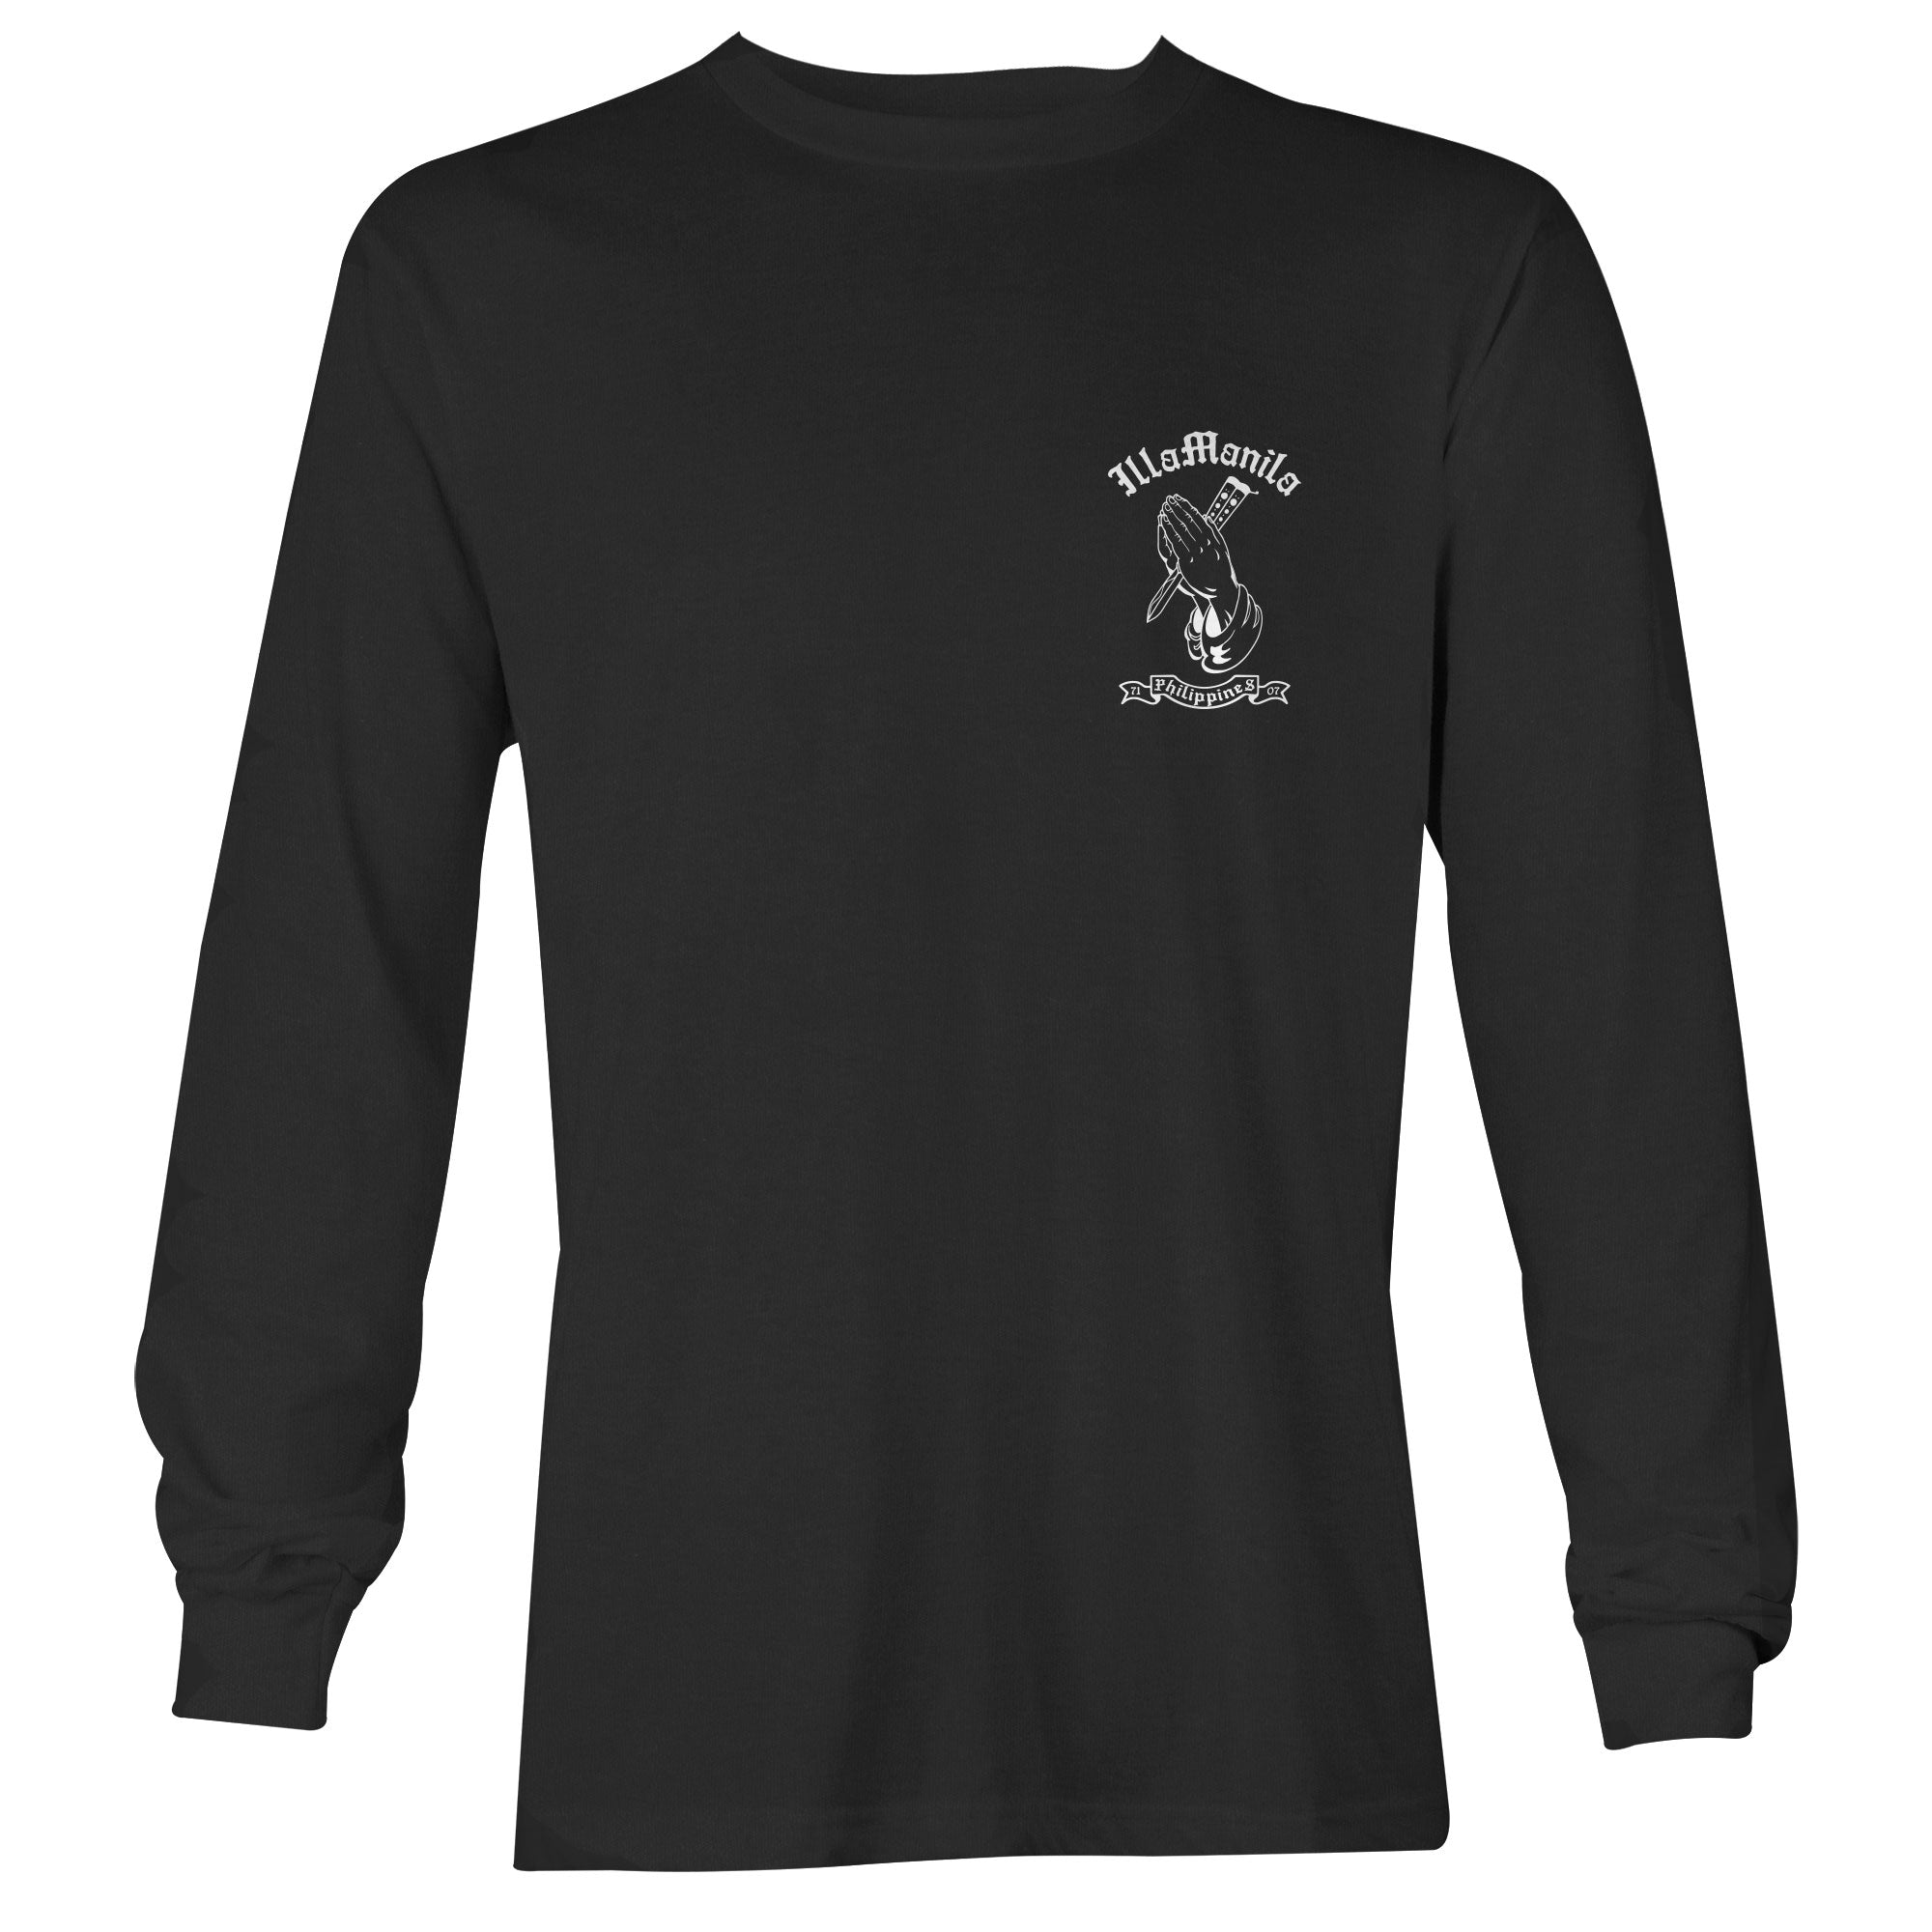 Praying Hands Balisong Long Sleeve T-shirt - Black